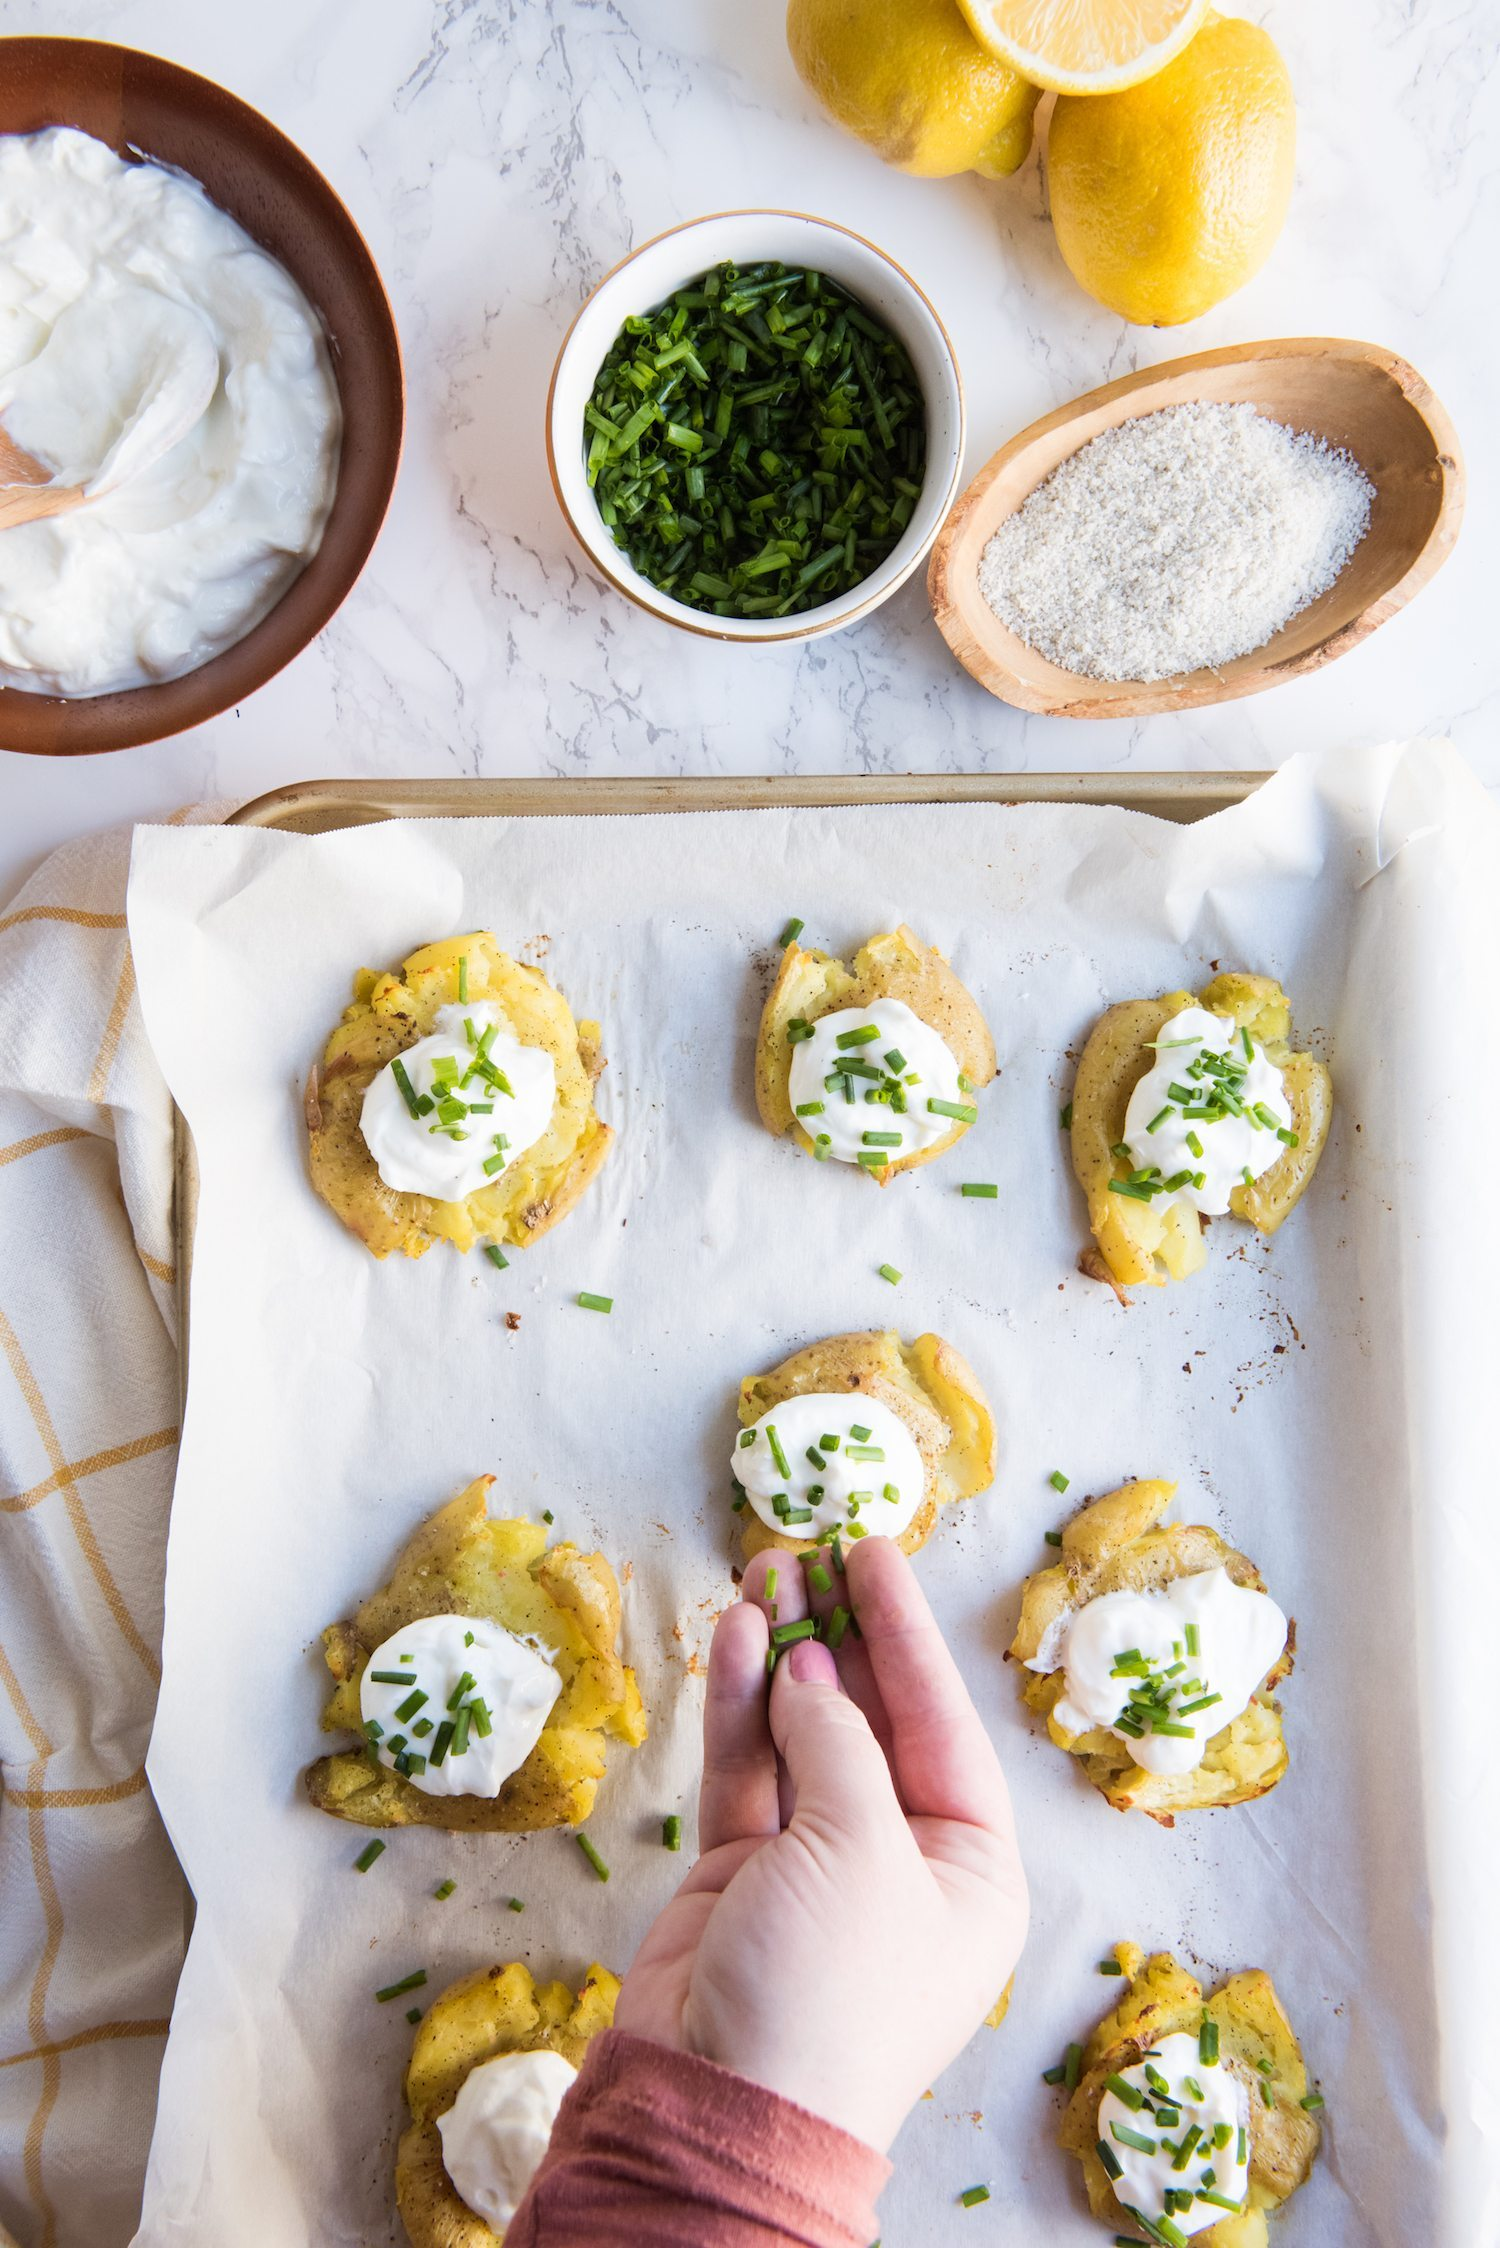 Lemon + Herb Smashed Potatoes with Greek Yogurt | Party recipes, entertaining tips, easy party appetizers, party ideas and more from @cydconverse